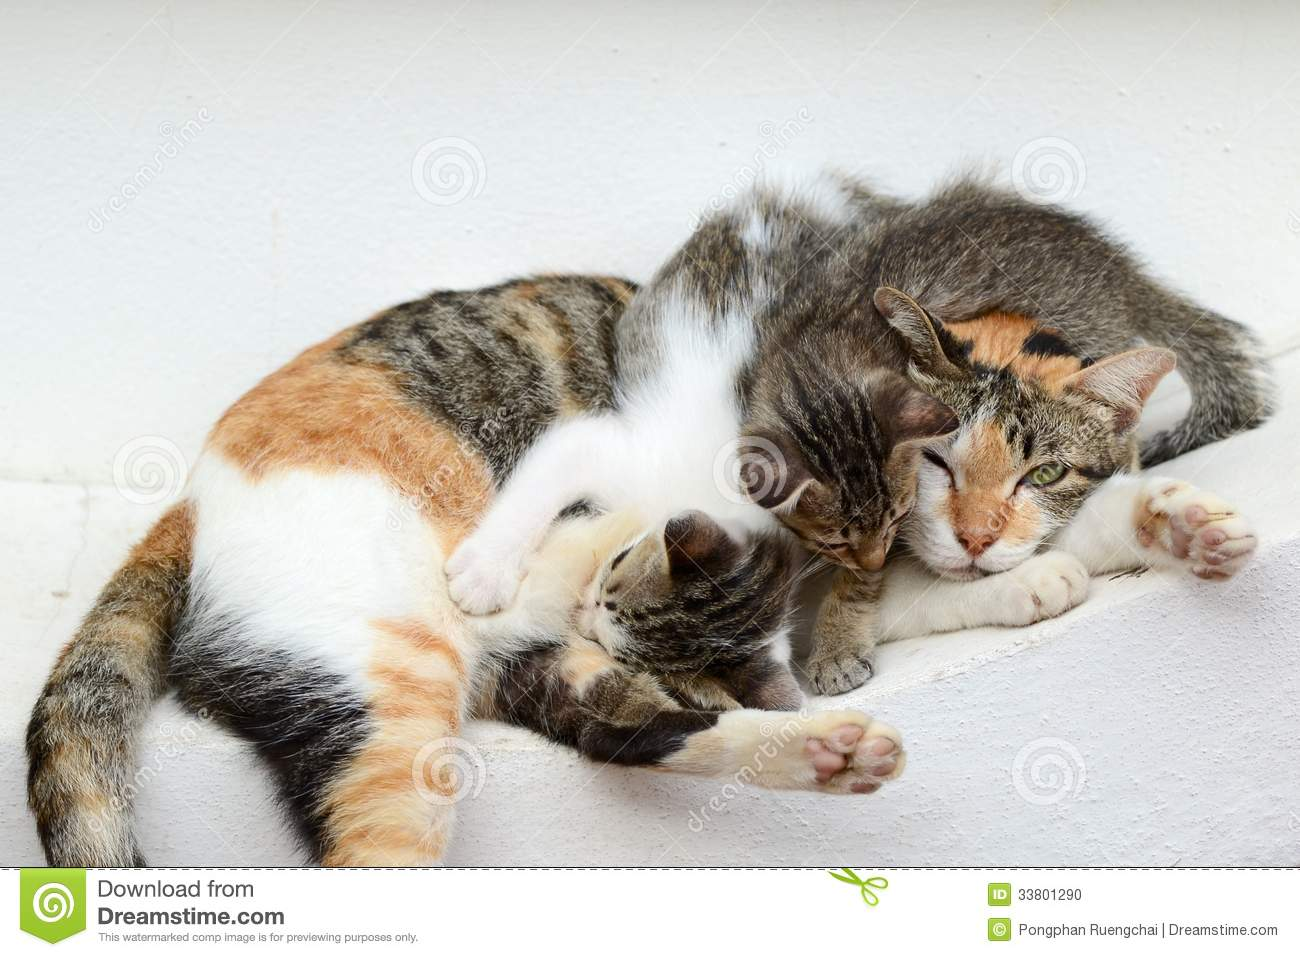 Kittens Drinking Milk From Another Cat